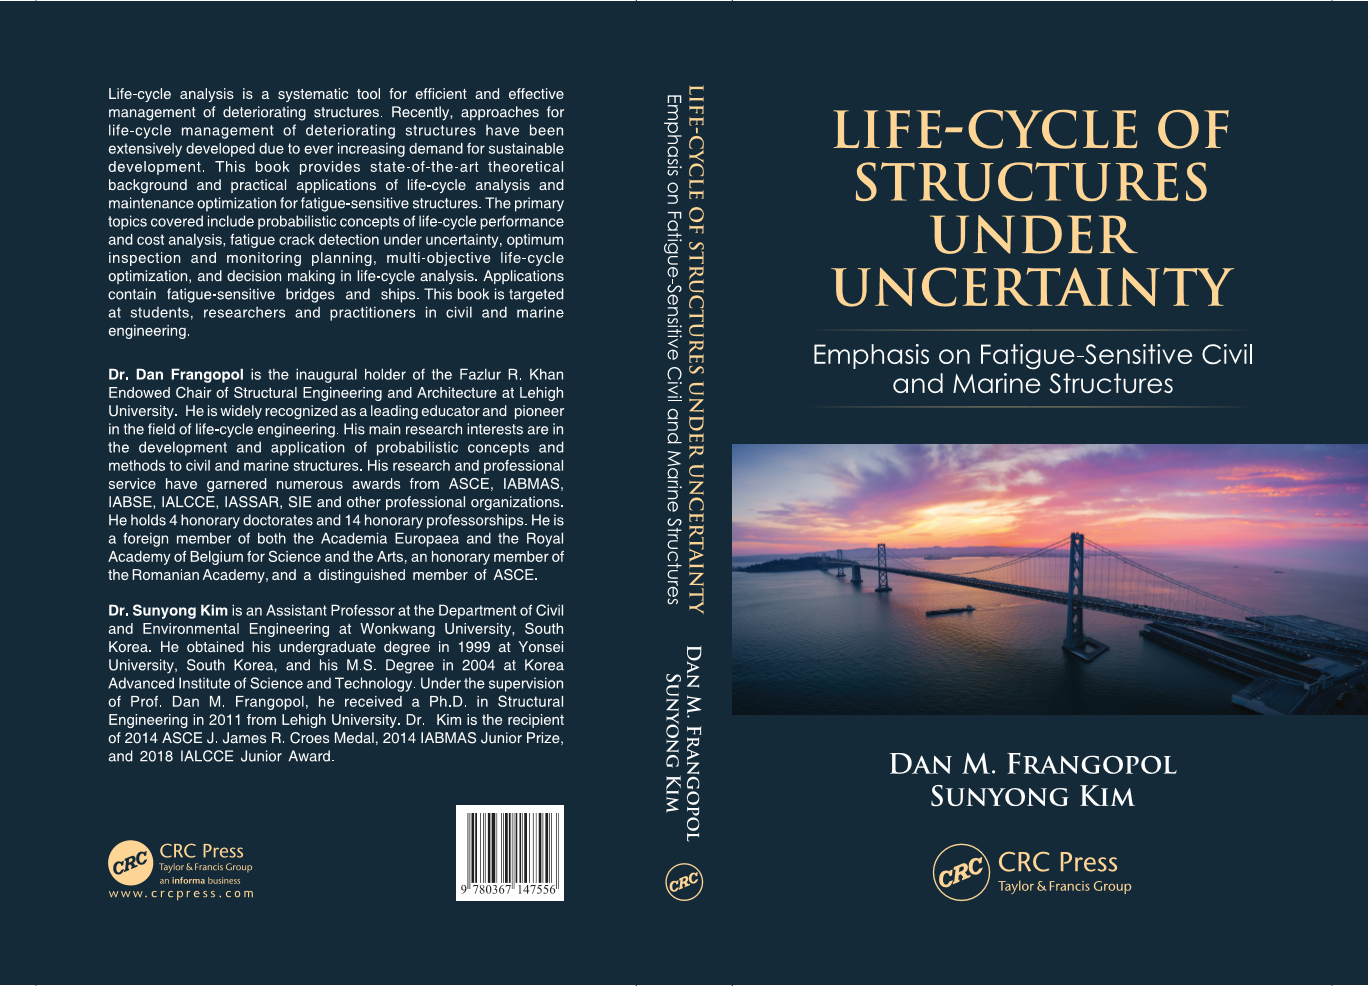 The cover of Life-Cycle of Structures Under Uncertainty: Emphasis on Fatigue-Sensitive Civil and Marine Structures.